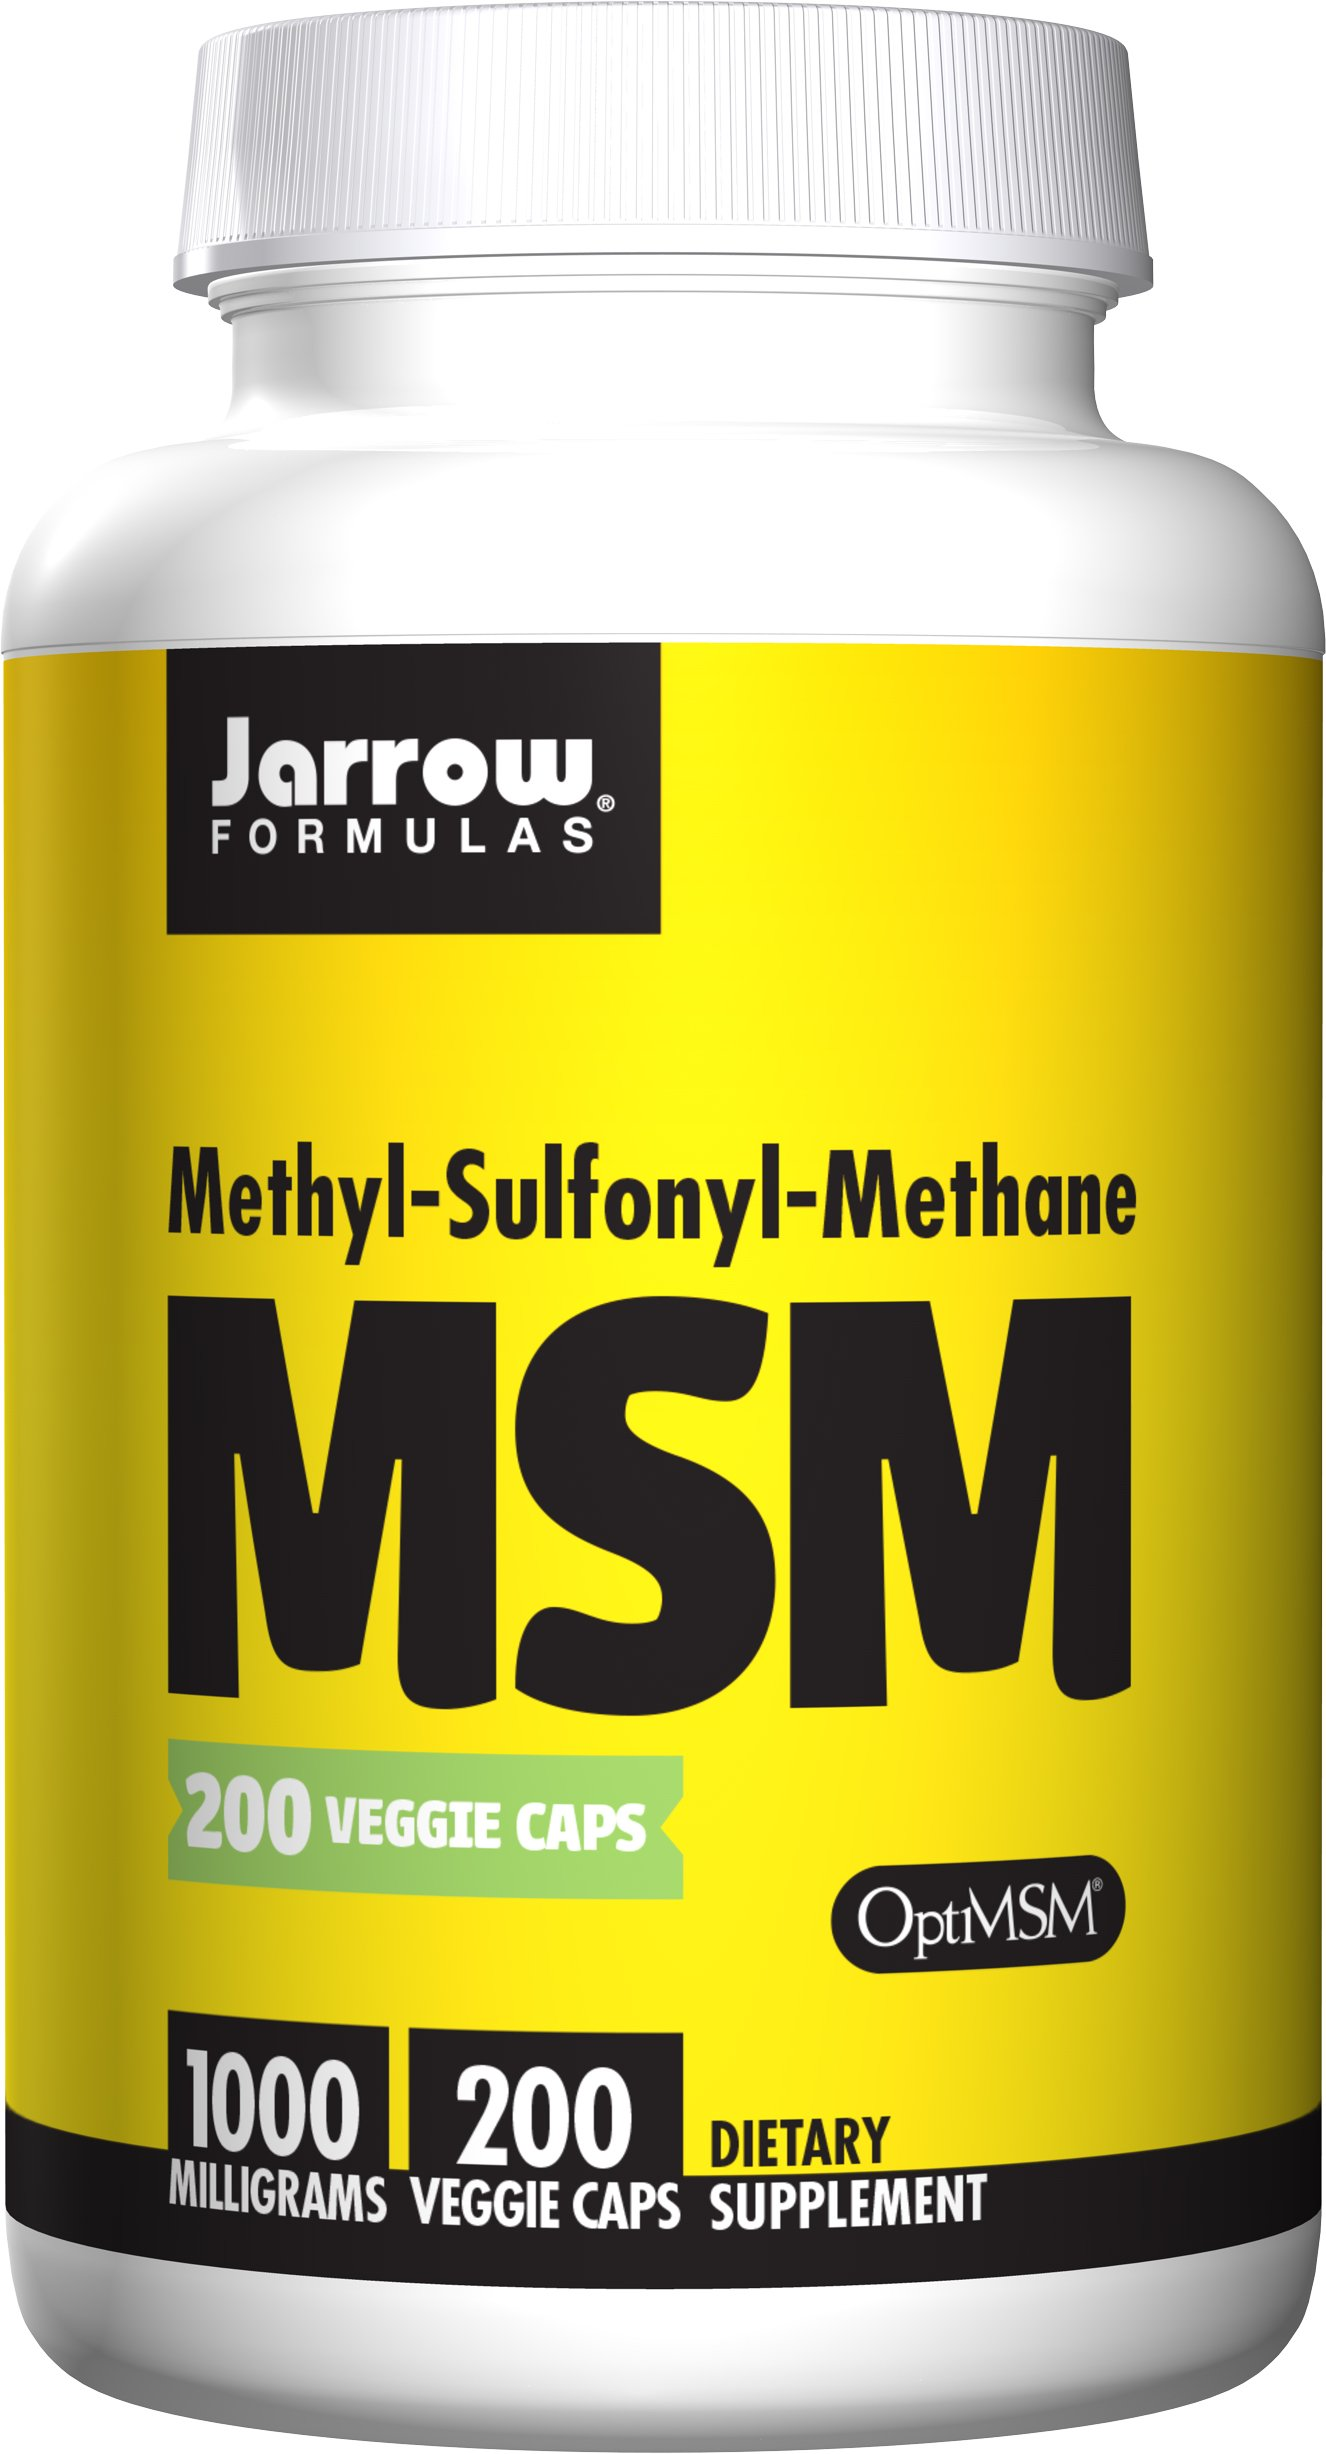 Jarrow Formulas MSM, A Bioavailable Source of Sulfur, with Antioxidant and Protein-Building Functions*, 1000 mg, 200 Veggie Capsules